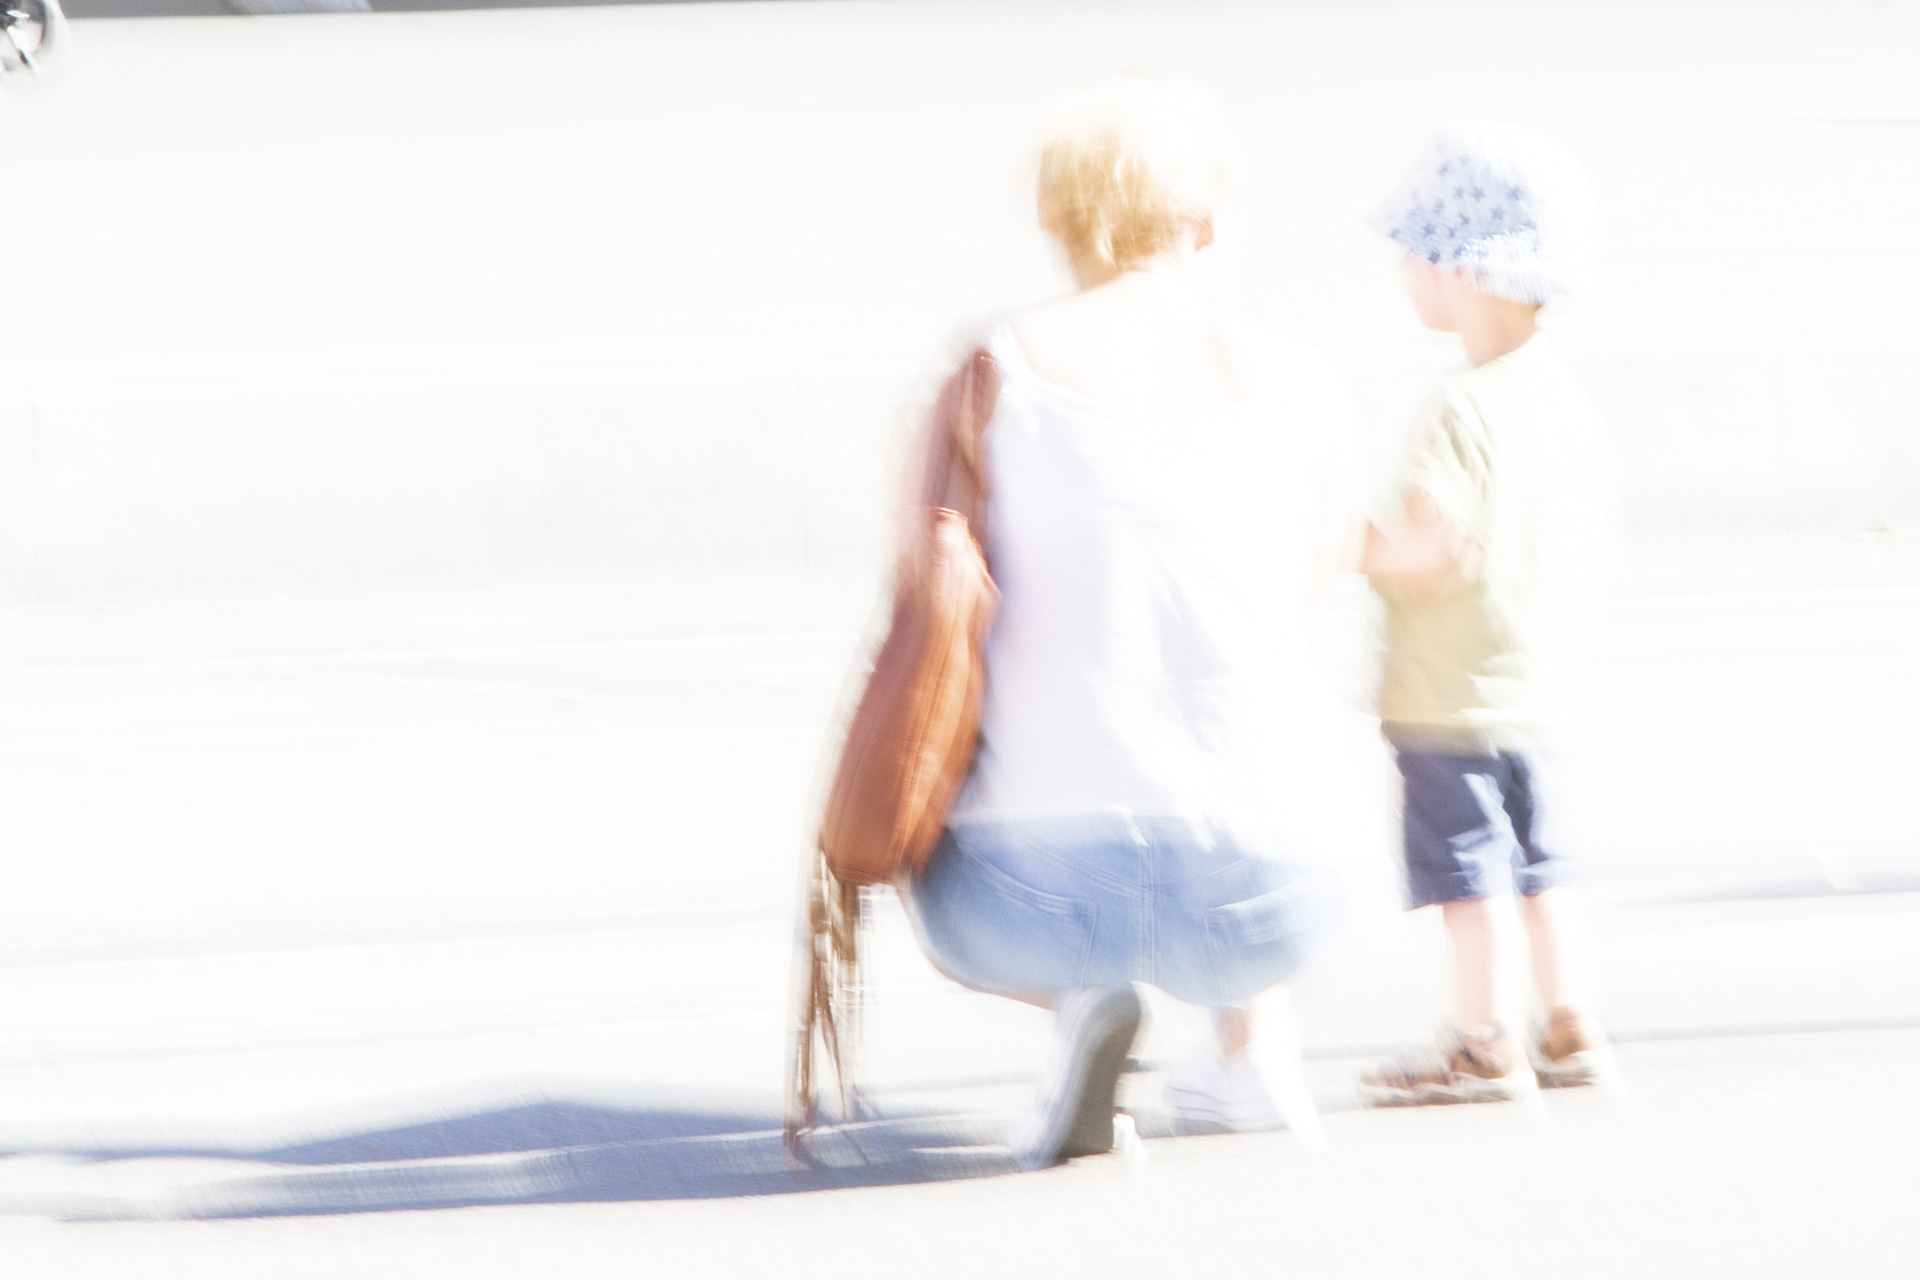 a bright white images with bright coloured ghostly image of crouching grandmother with young child beside her from behind.